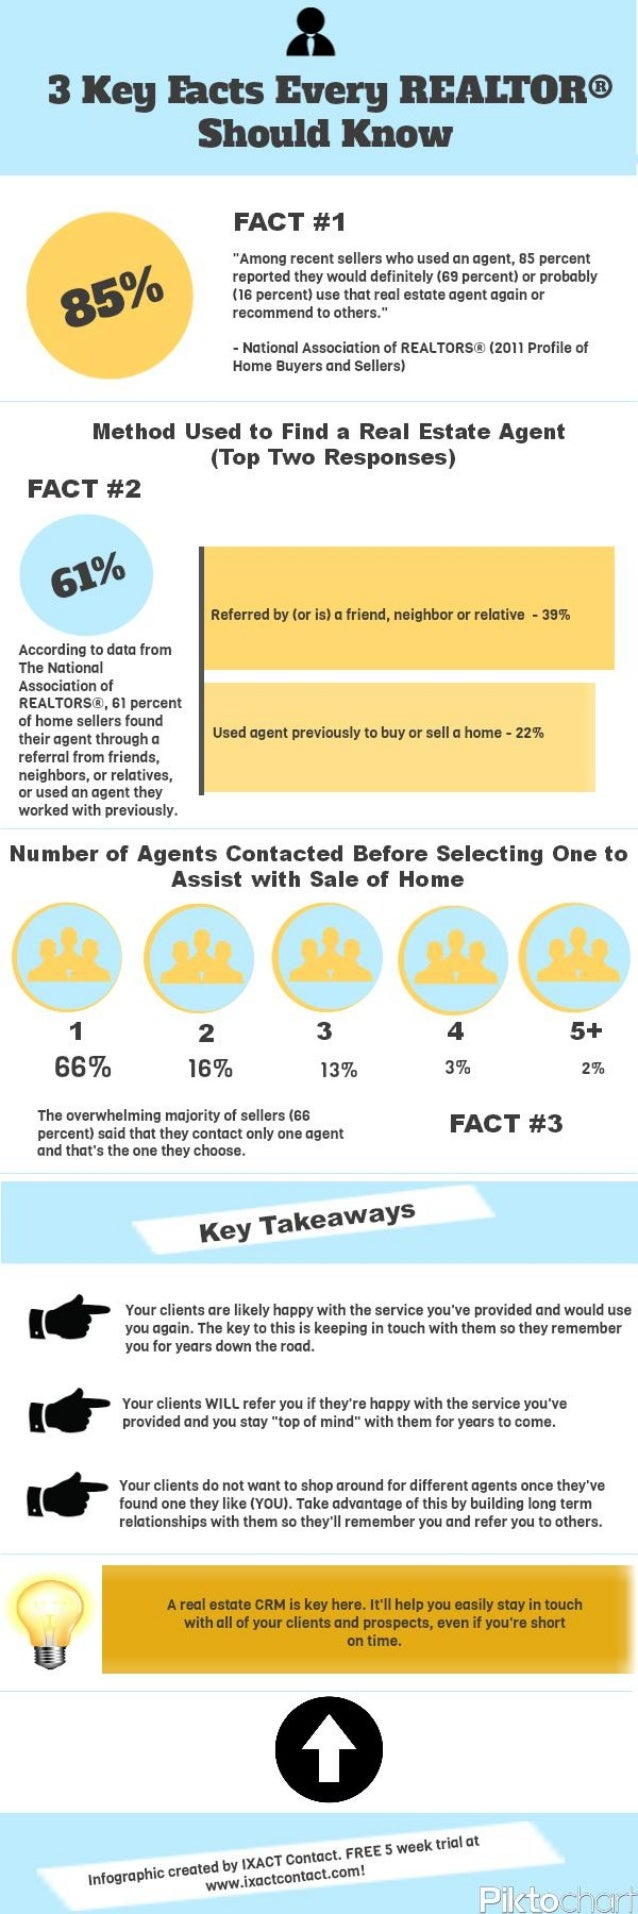 3 Key Facts Every REALTOR® Should Know